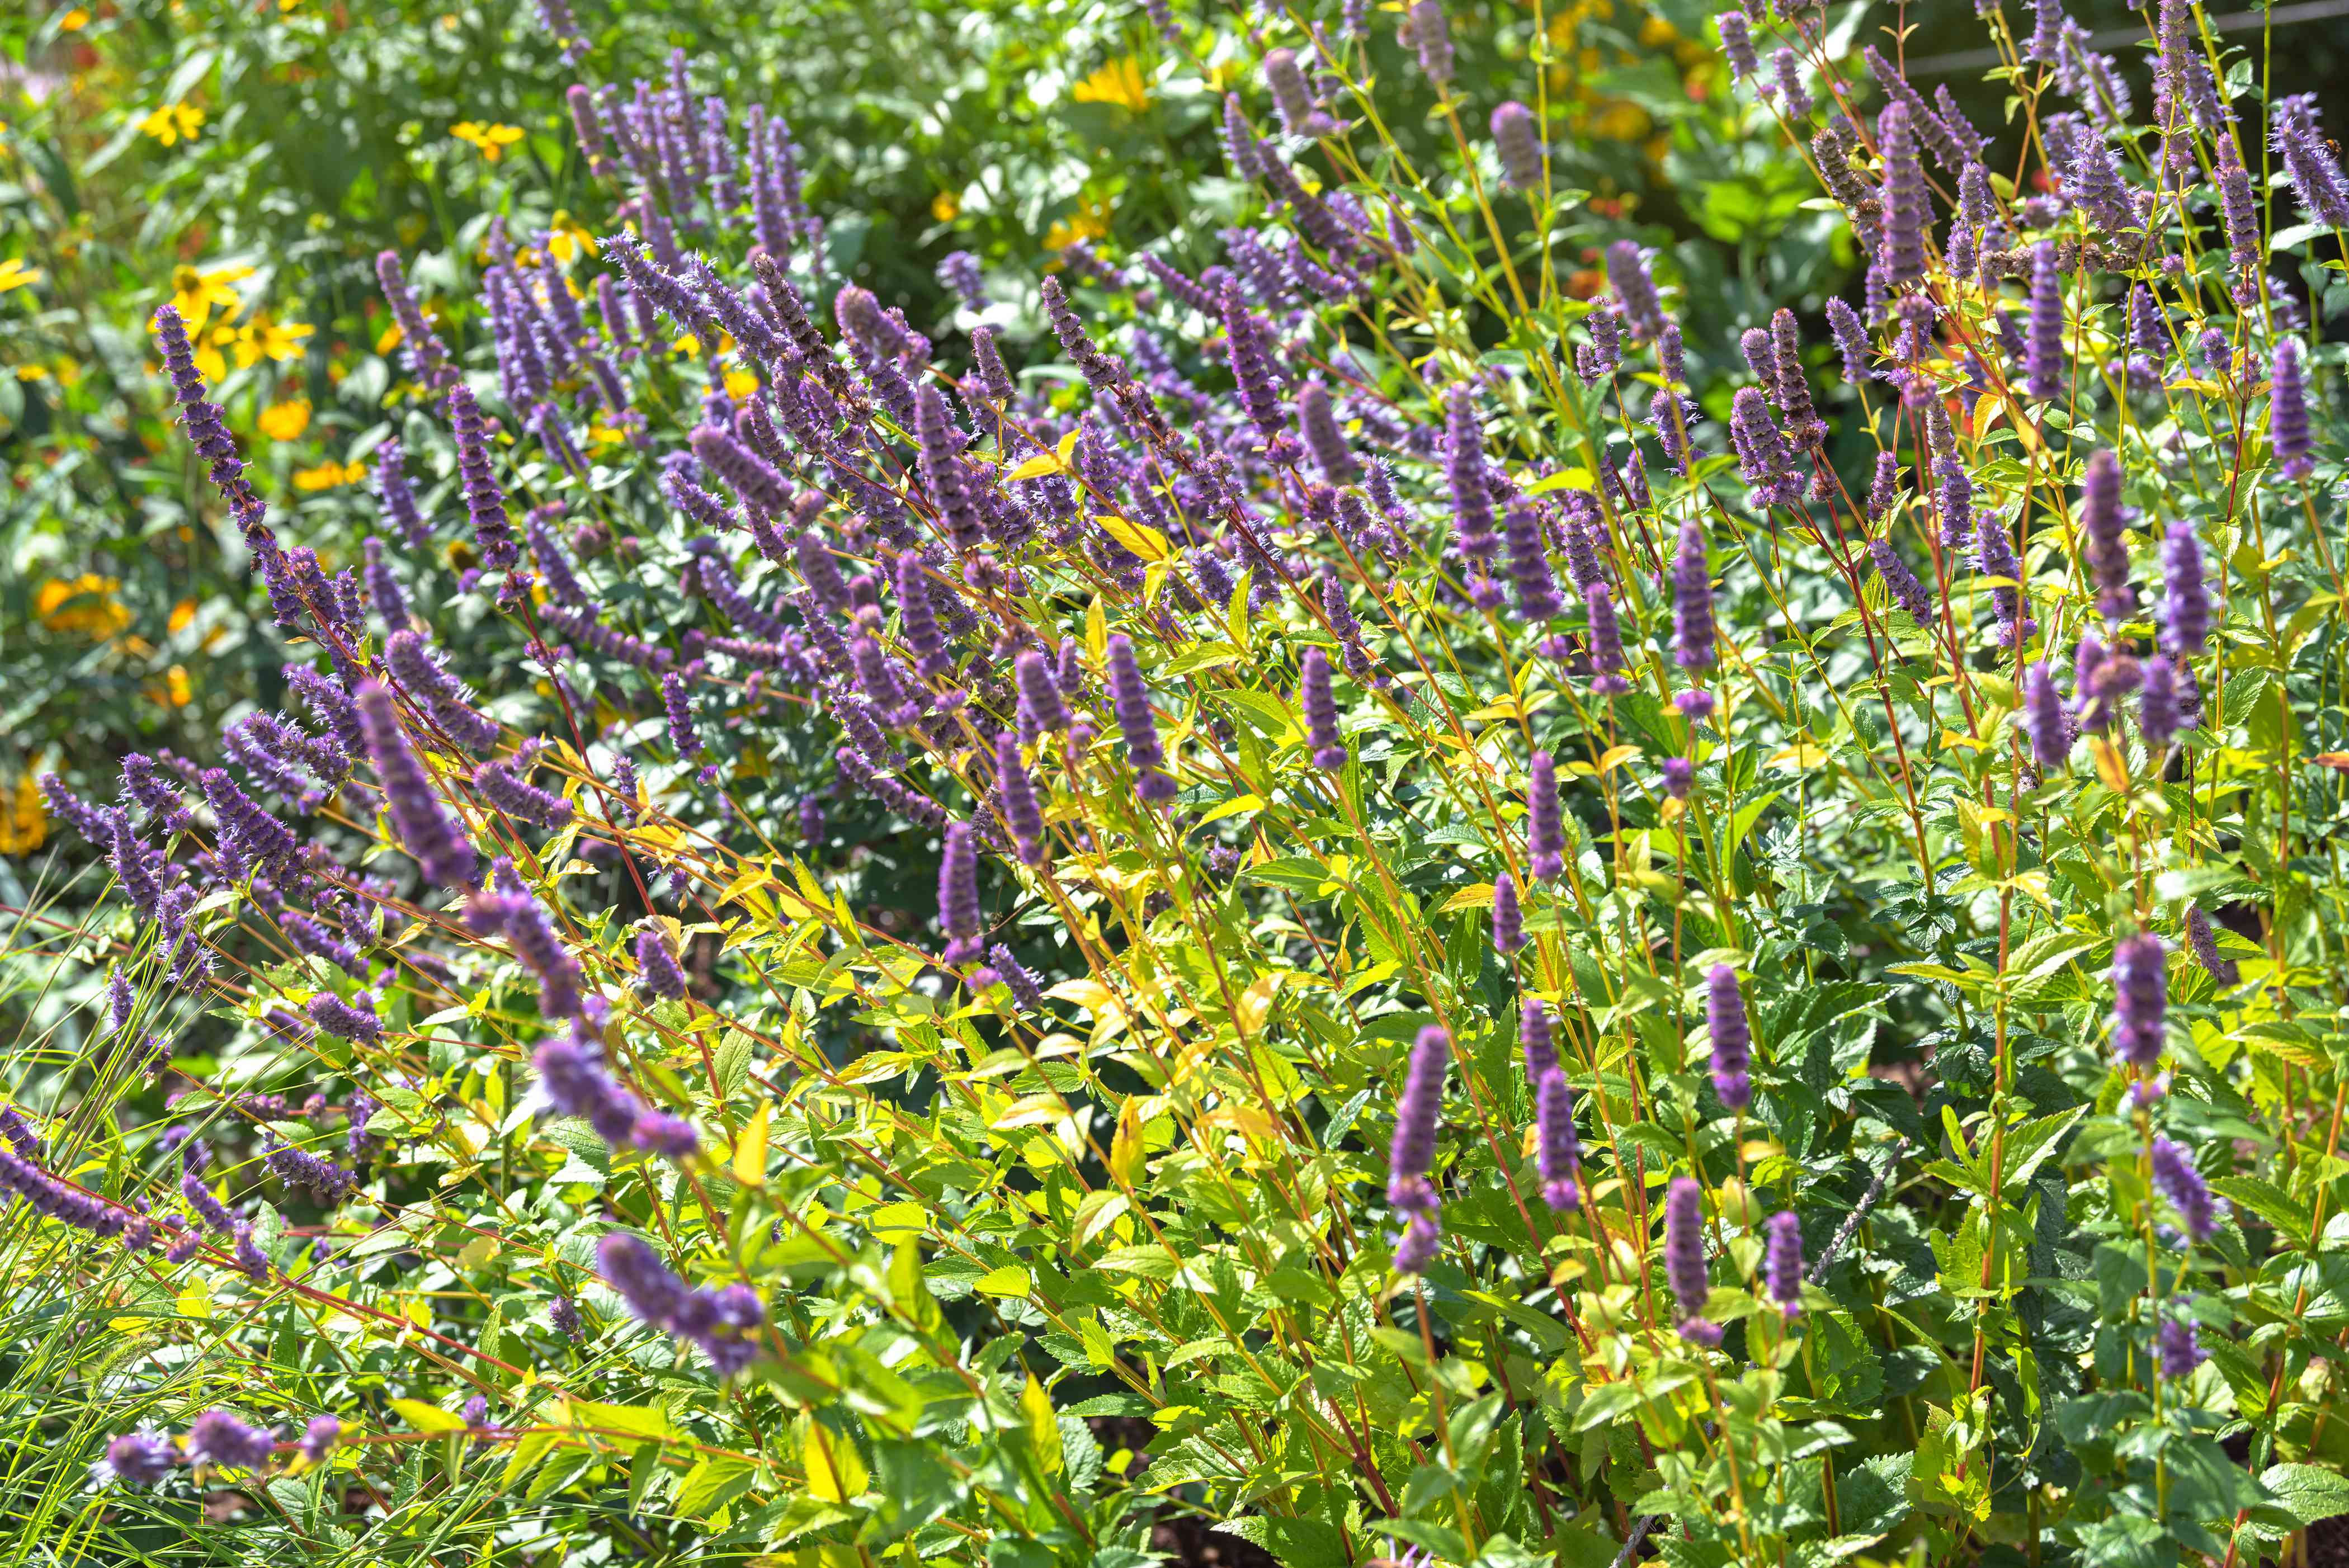 Anise hyssop with purple flower spikes on thin stems surrounded by yellow-green leaves in cunlight